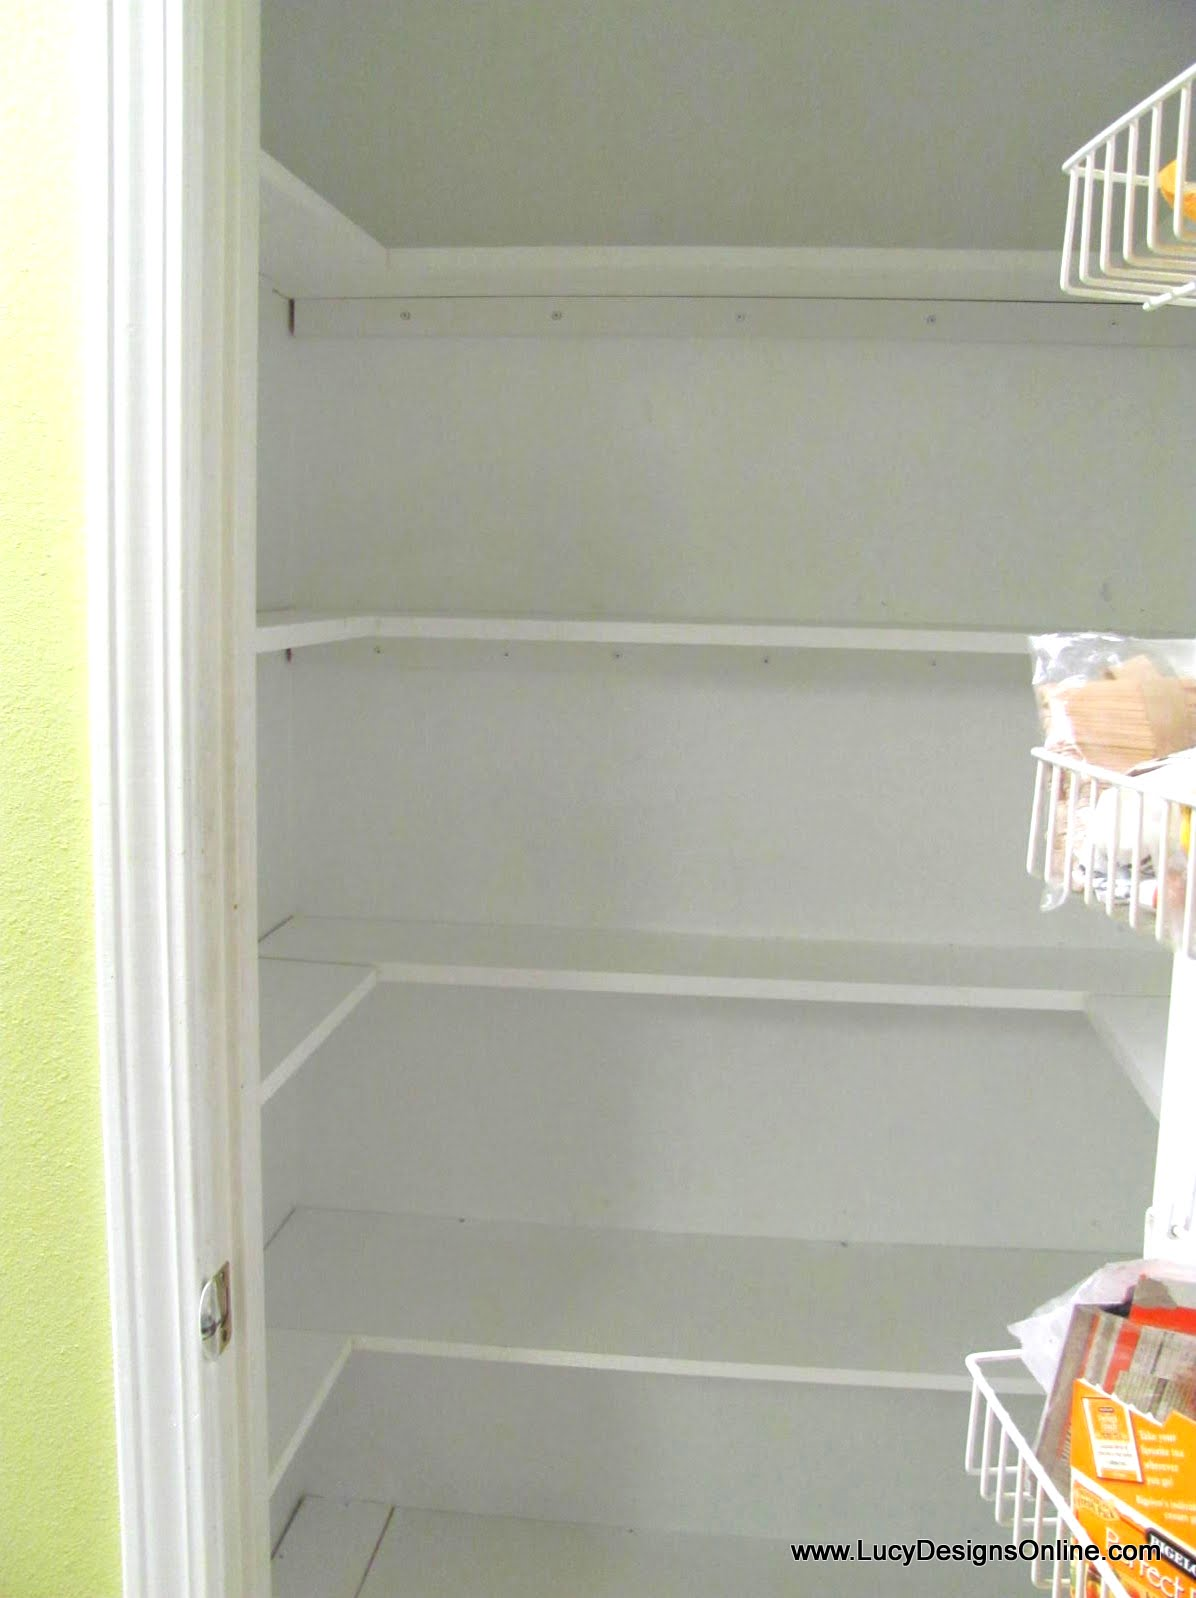 Brand new Kitchen Pantry Makeover DIY Installing Wood Wrap Around Shelving  DP29